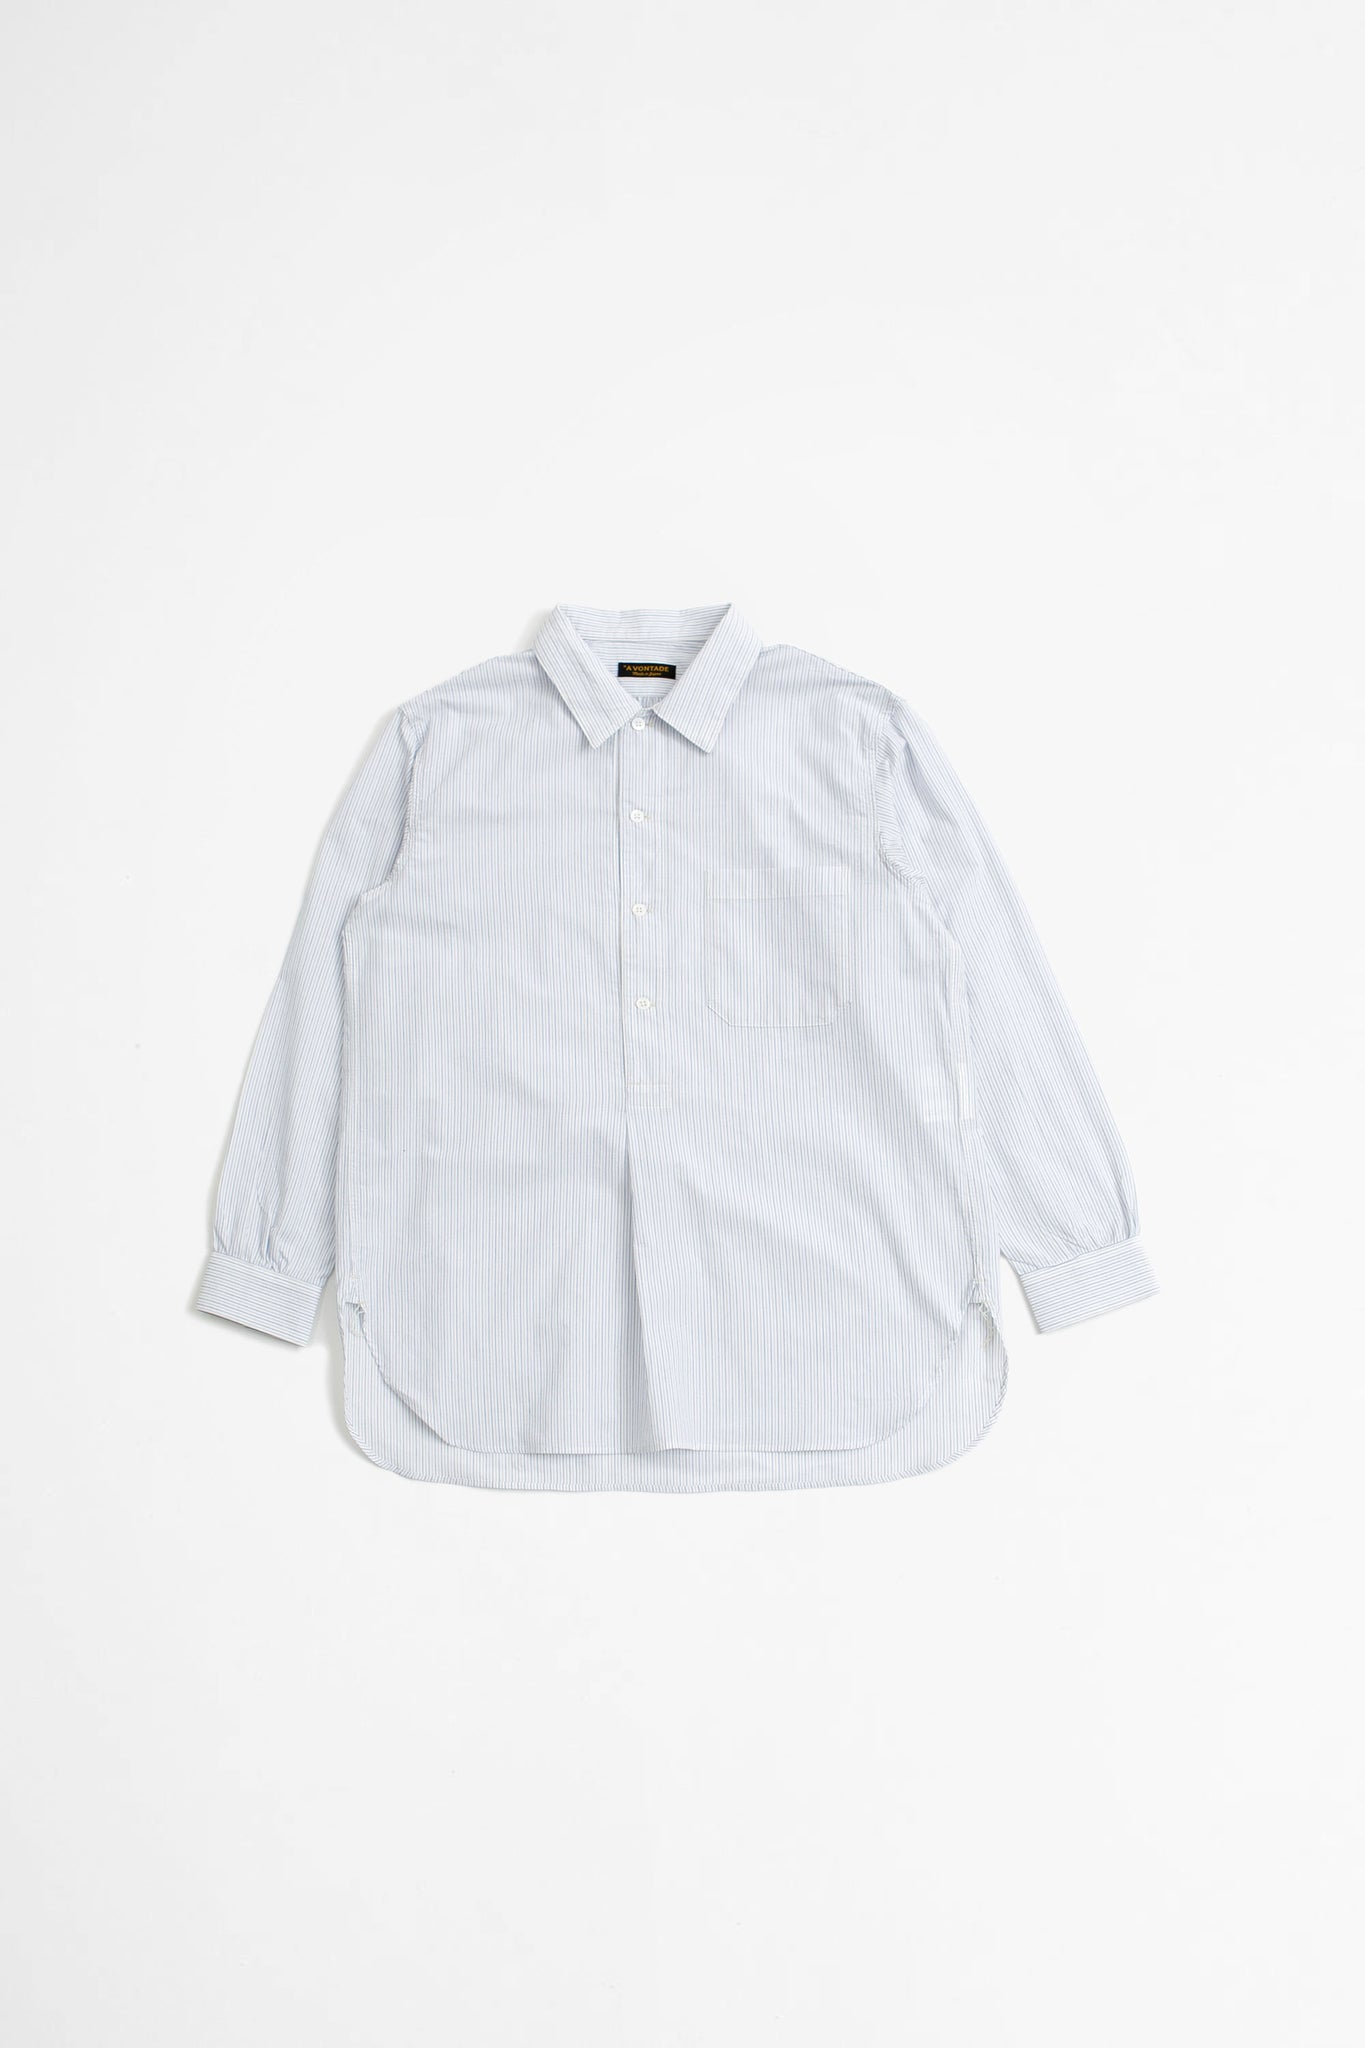 Pullover shirt white stripe